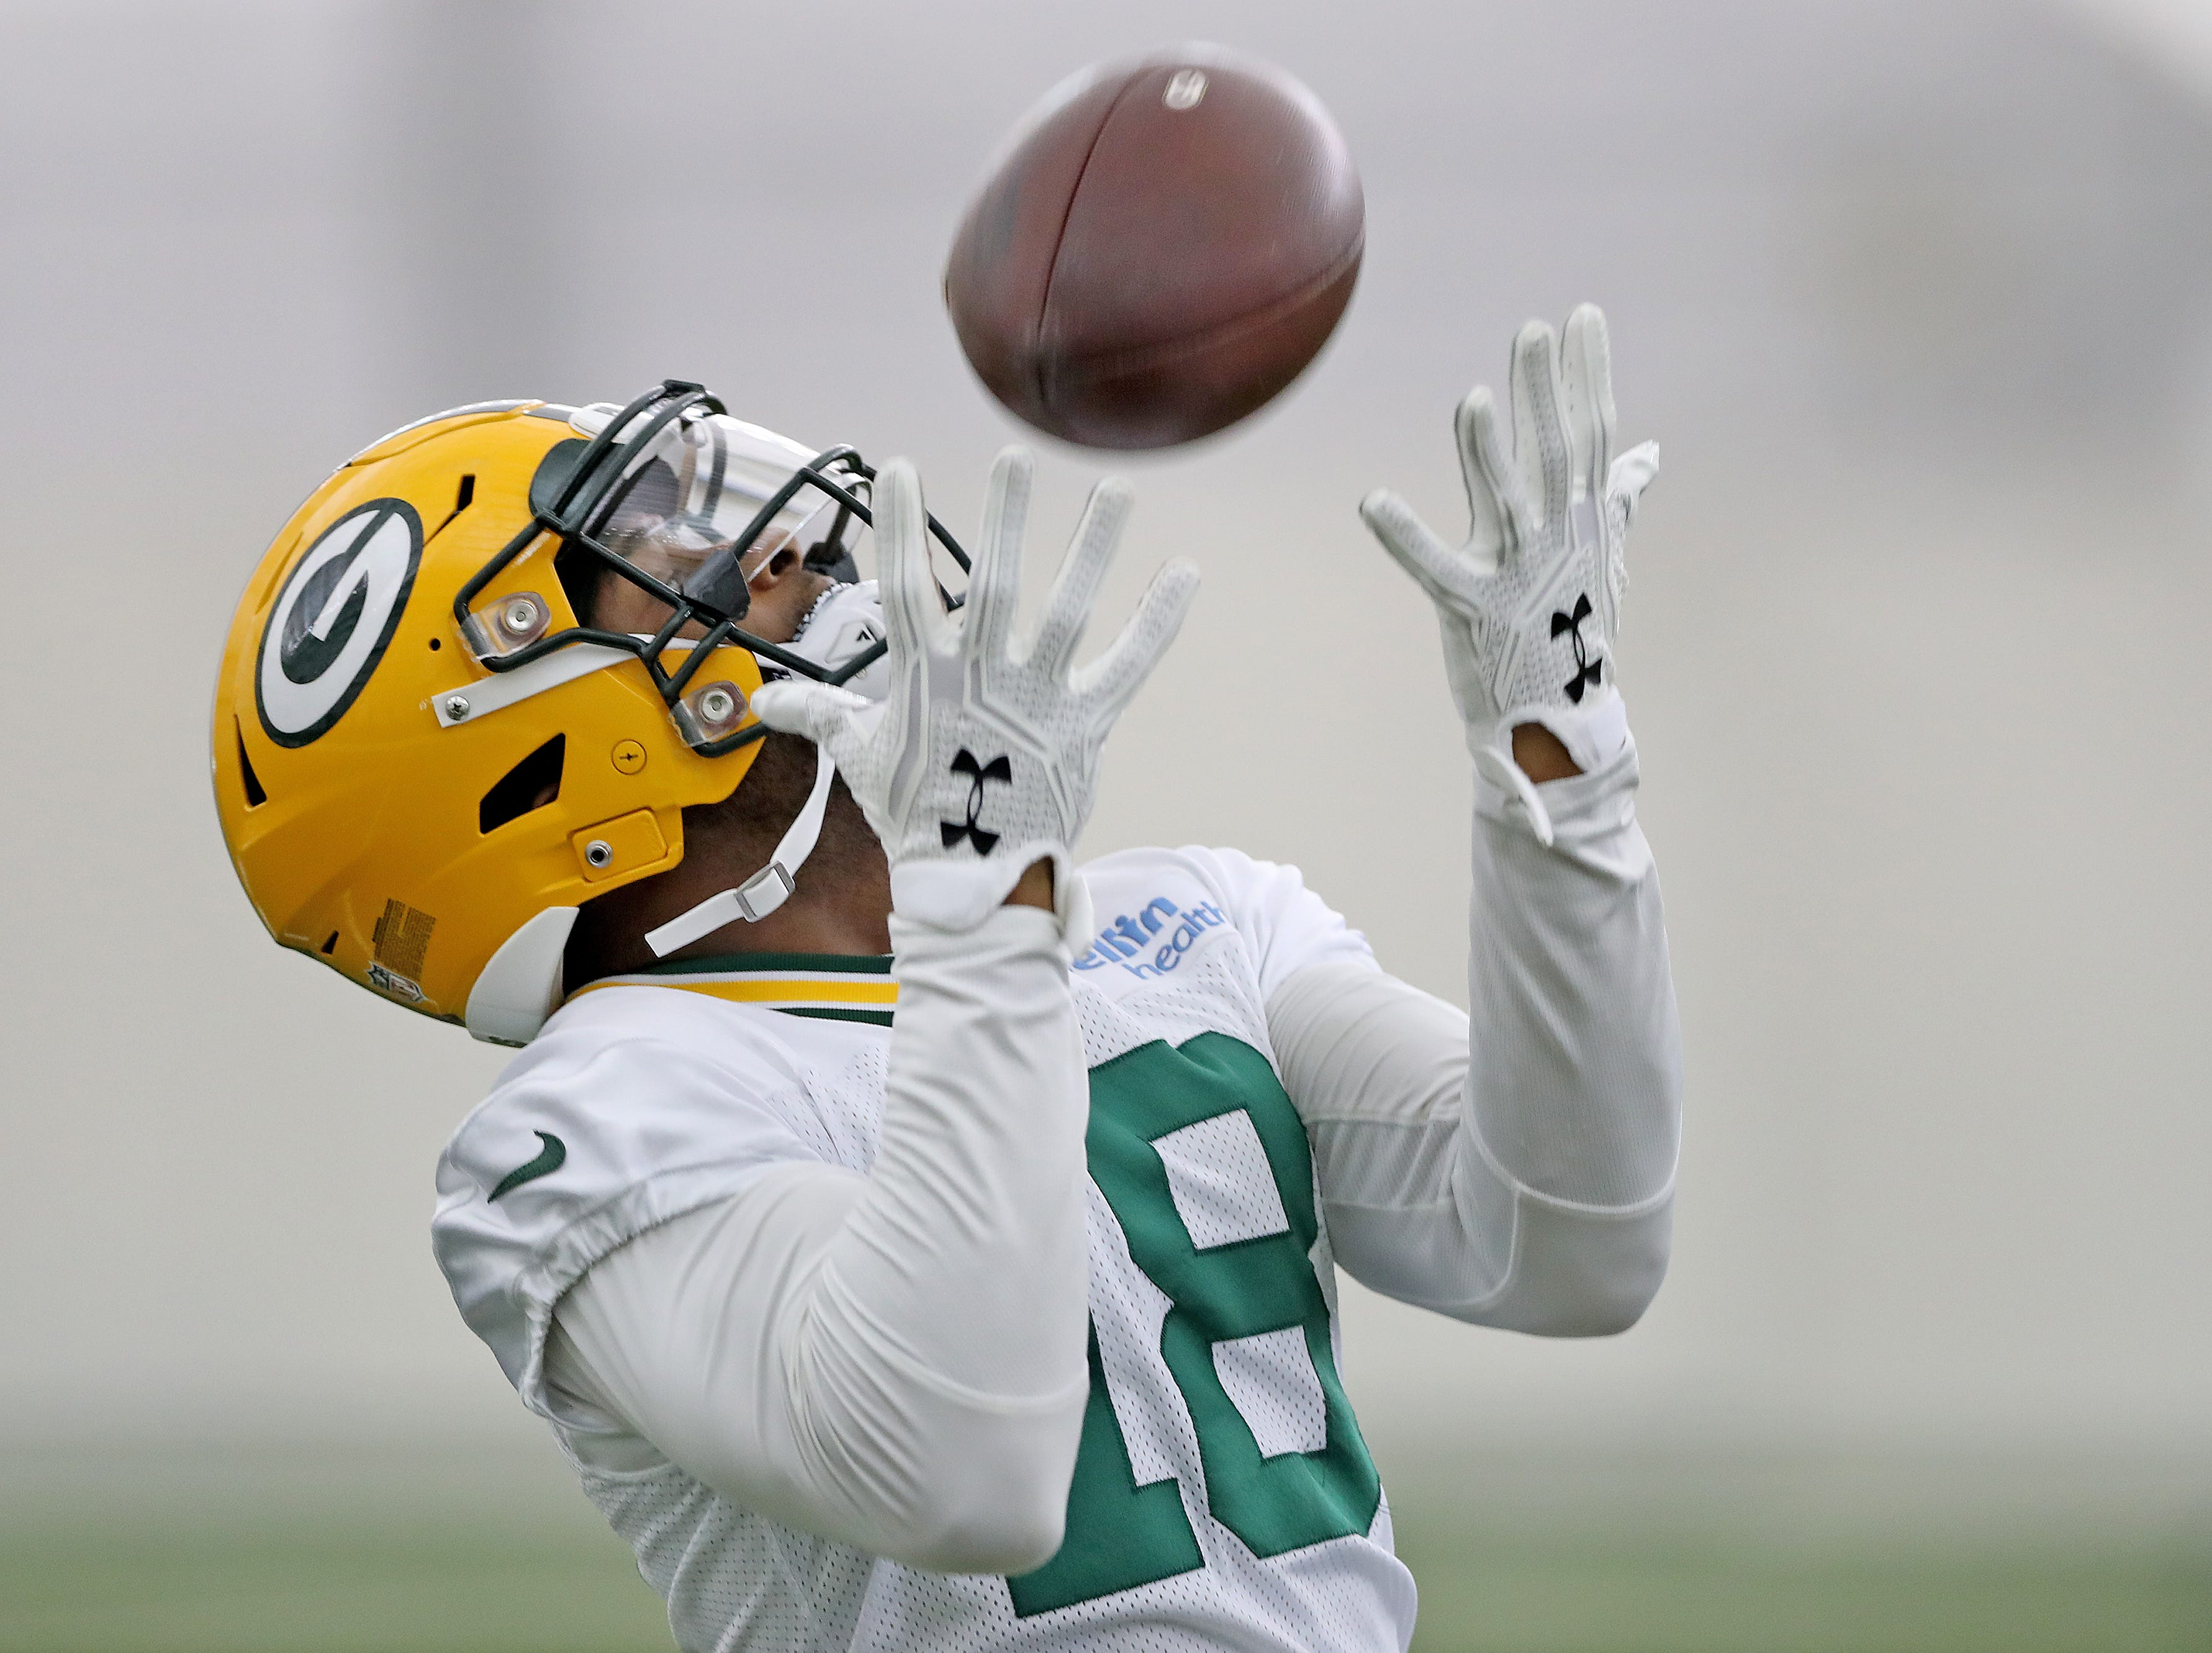 Green Bay Packers wide receiver Randall Cobb (18) during Packers practice in the Don Hutson Center Monday, September 3, 2018 in Ashwaubenon, Wis